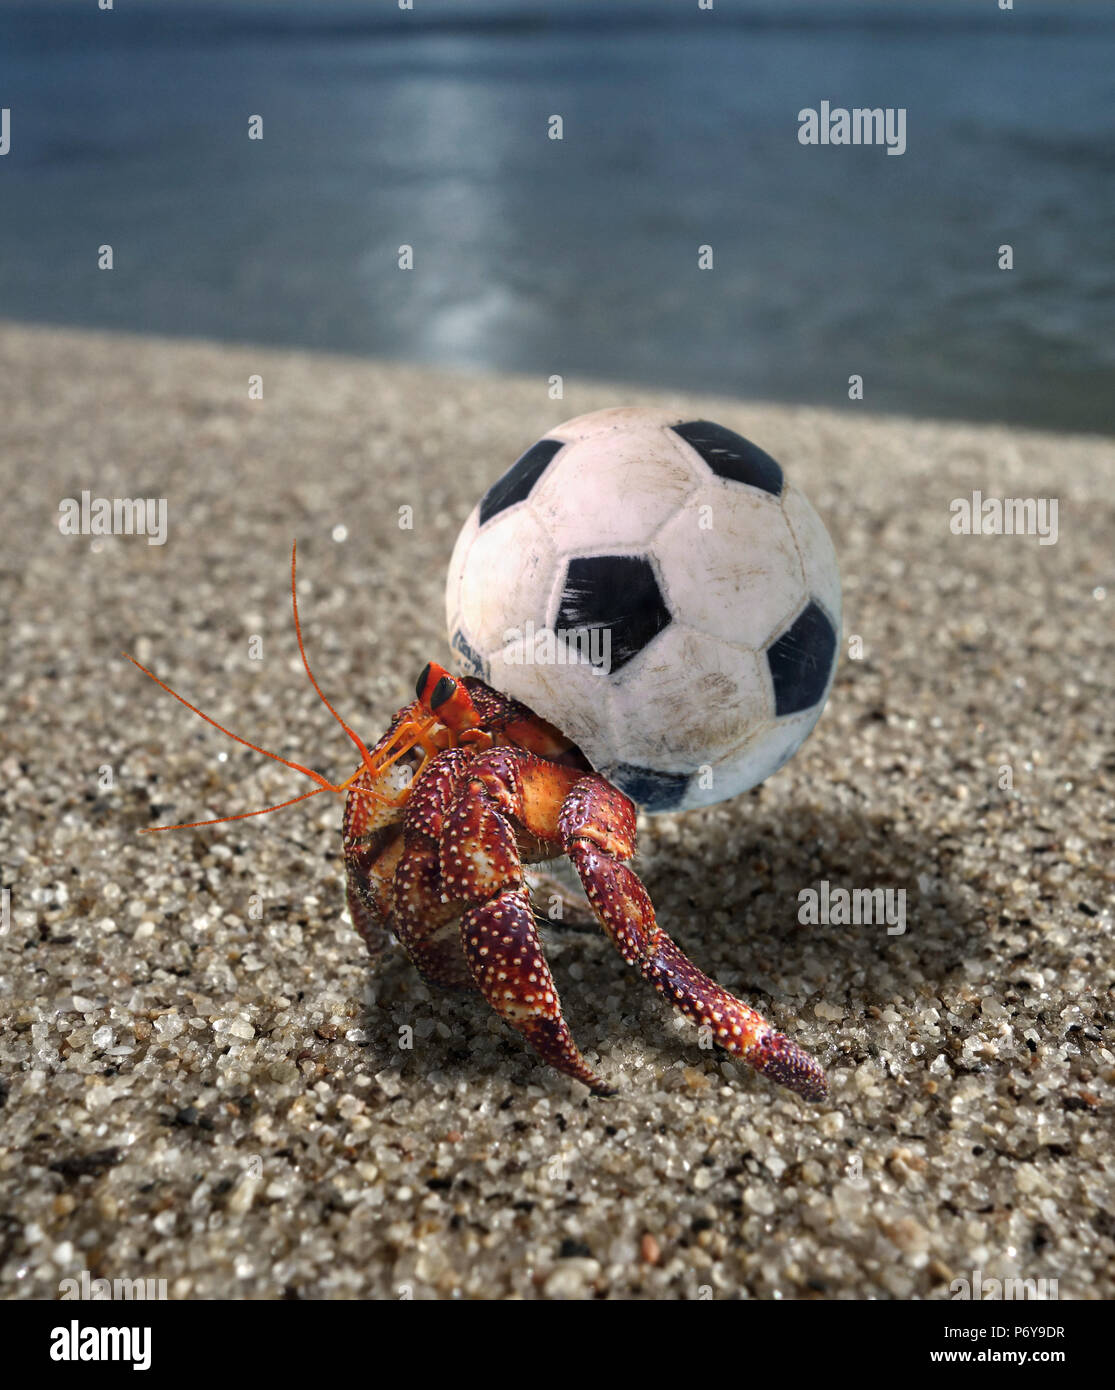 Hermit crab using a small plastic football ball as a shell. - Stock Image